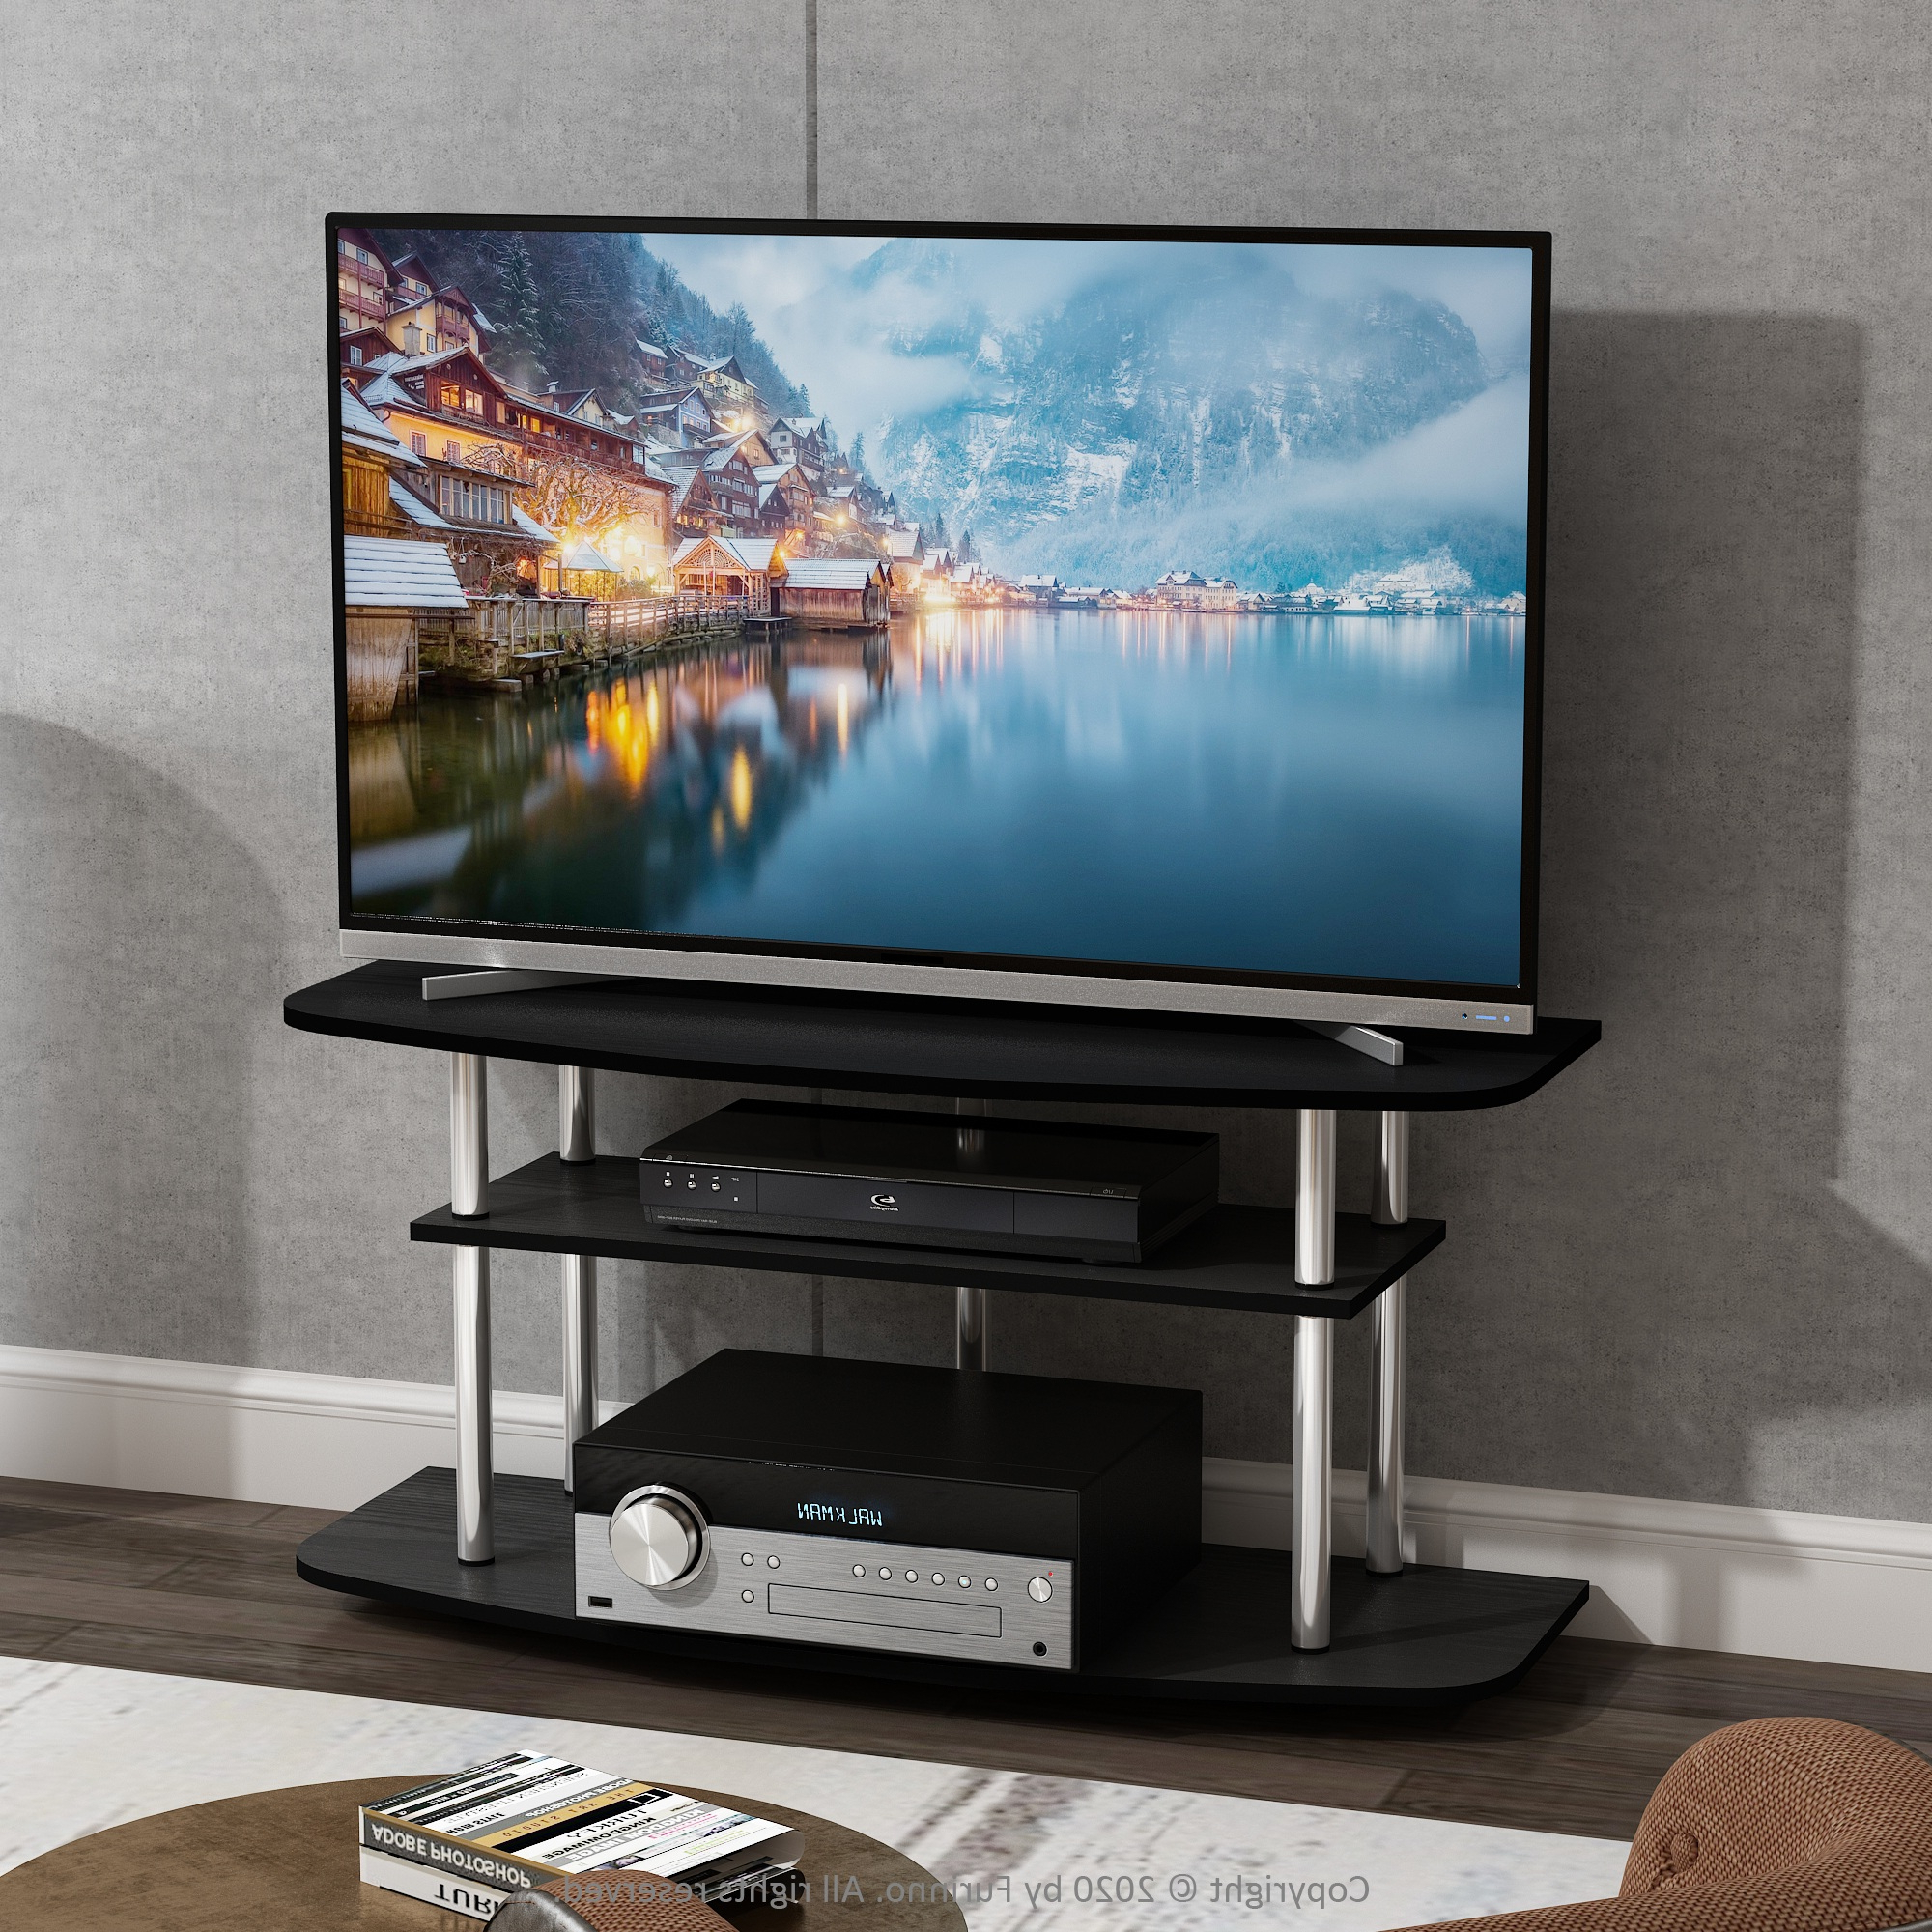 Furinno Frans Turn N Tube 3 Tier Tv Stand For Tv Up To 46 With Furinno Turn N Tube No Tool 3 Tier Entertainment Tv Stands (View 1 of 20)